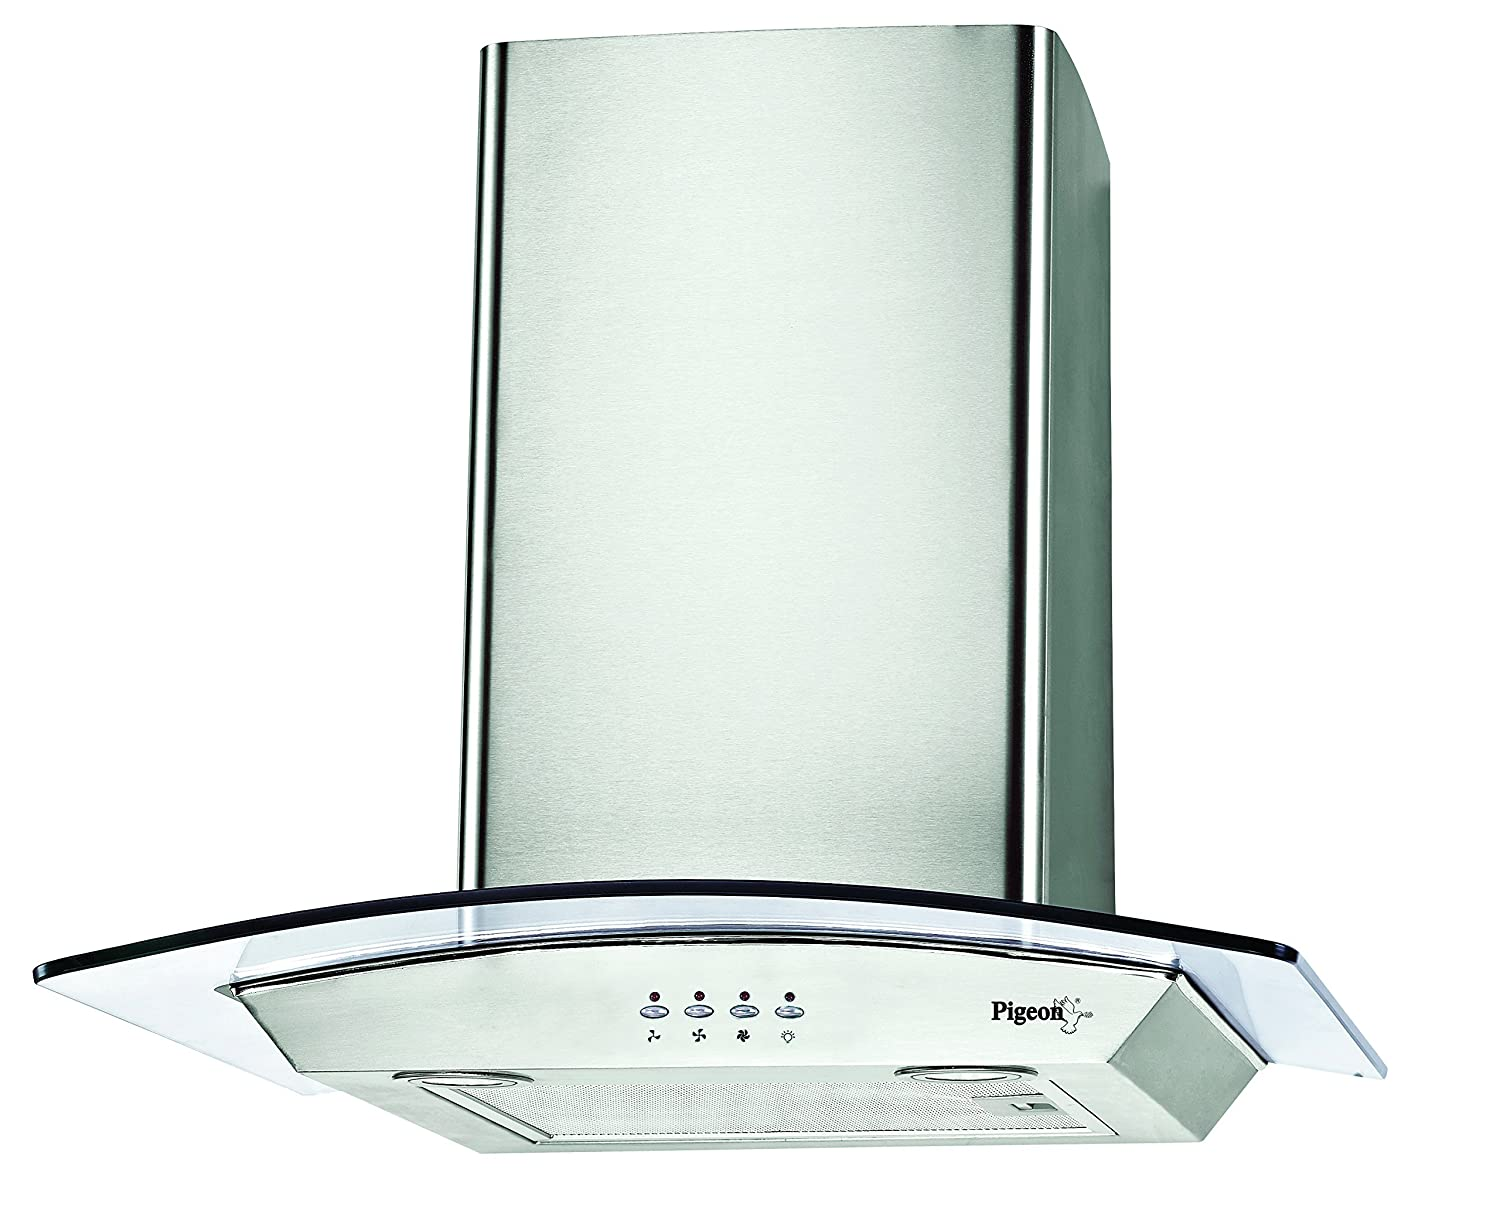 Pigeon Cornet Dlx 60 Kitchen Chimney Baffle Filter: Amazon.in: Home ...